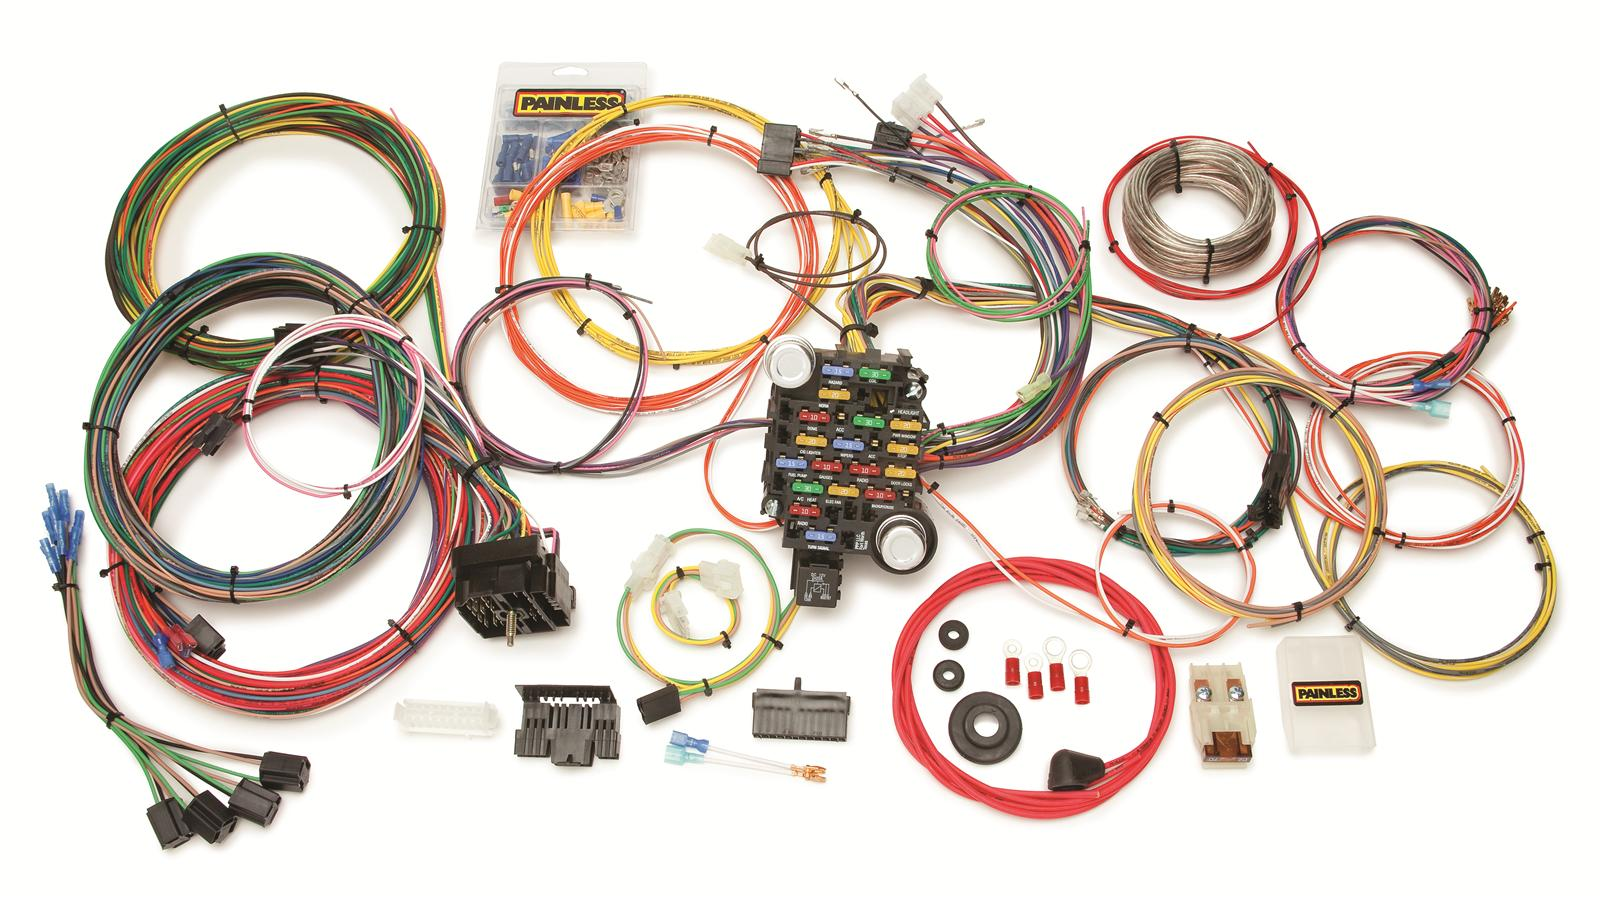 prf 10205_xl painless performance gmc chevy truck harnesses 10205 free engine wiring harness for 1996 gmc sonoma at bakdesigns.co